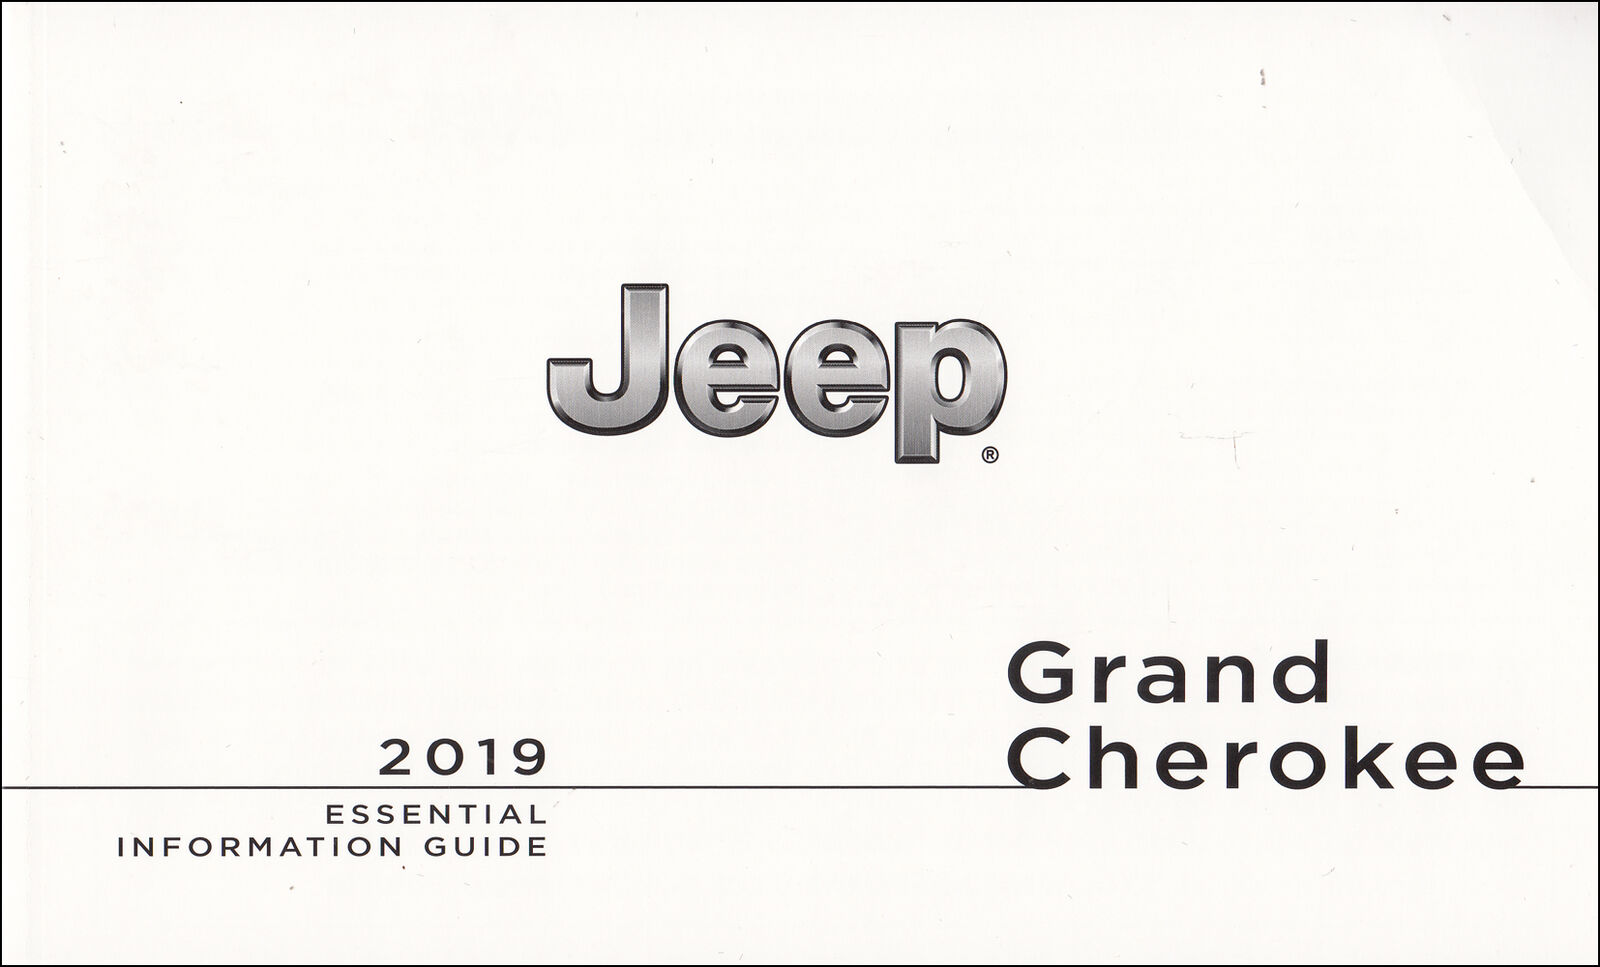 2019 Jeep Grand Cherokee Owner's Manual